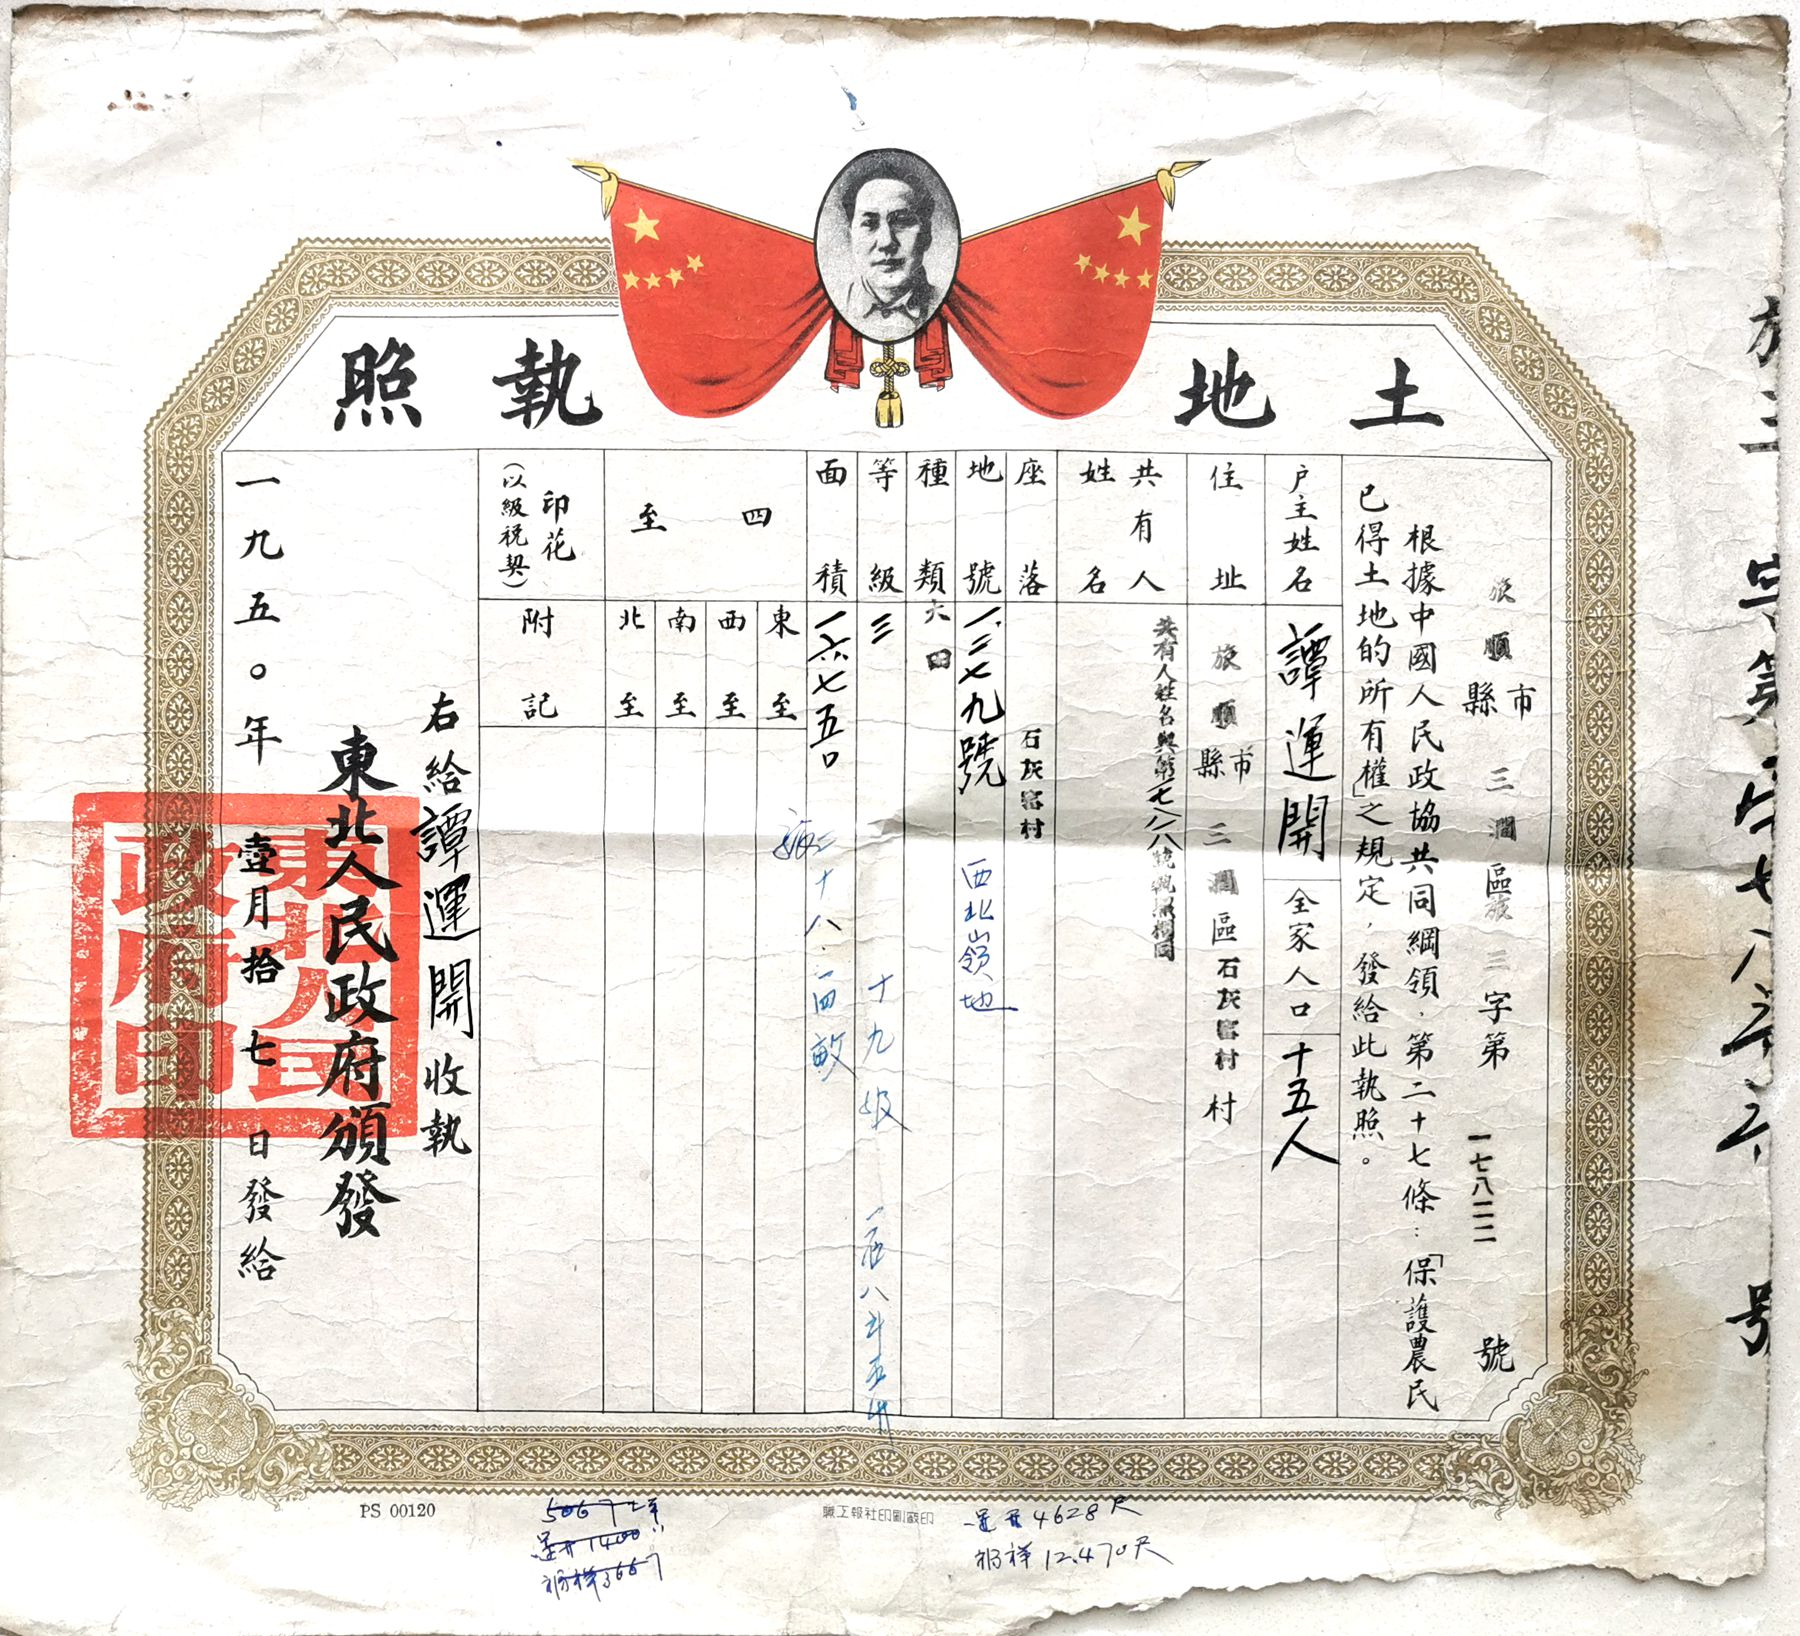 D4020, Land Deed of China, 1950 with Chairman Mao & Red Flag, Liaoning